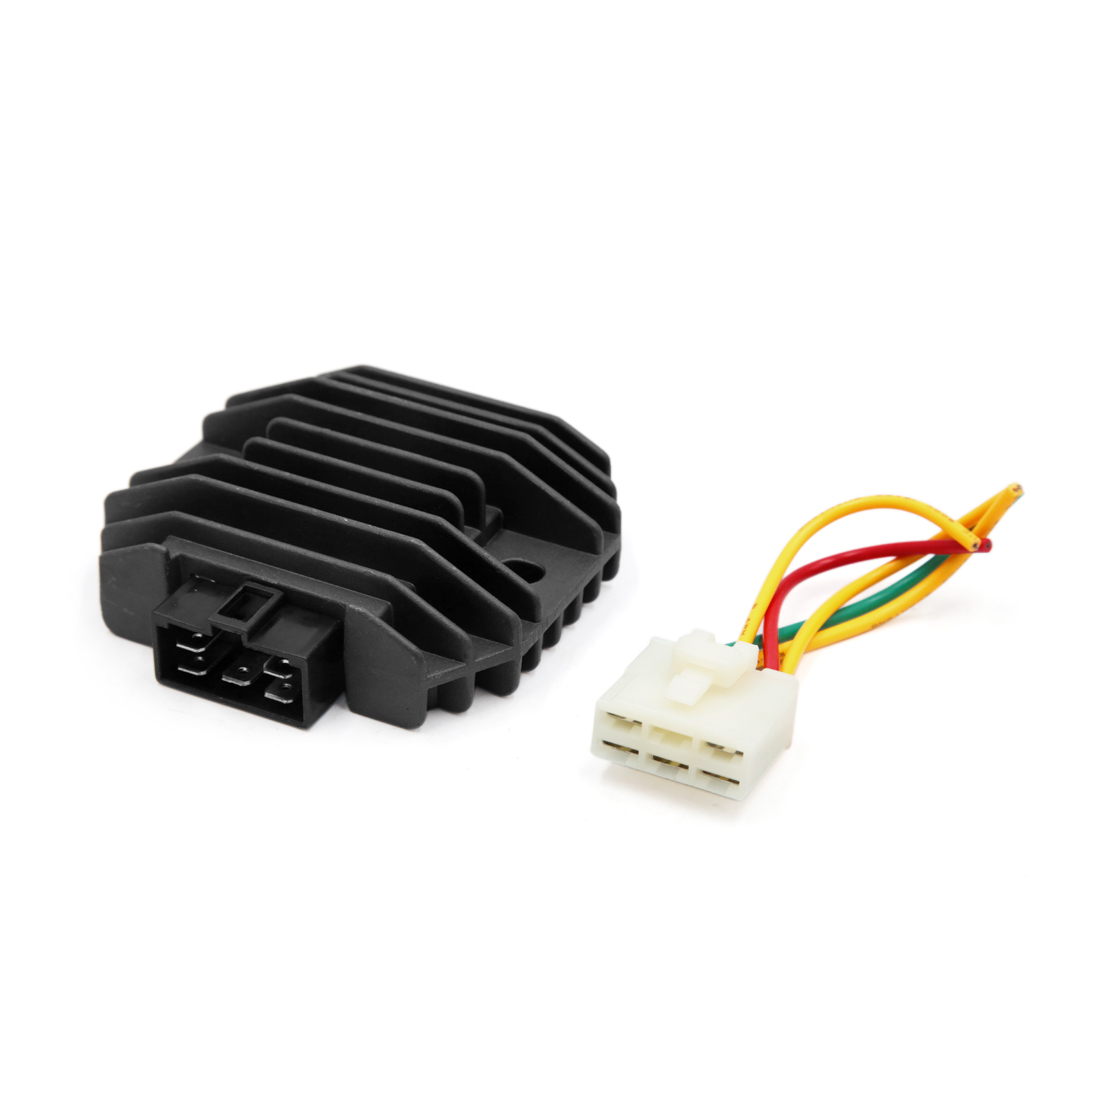 Voltage Regulator Rectifier for Yamaha YZF R6 1997-2002 YZF600 1996-2005